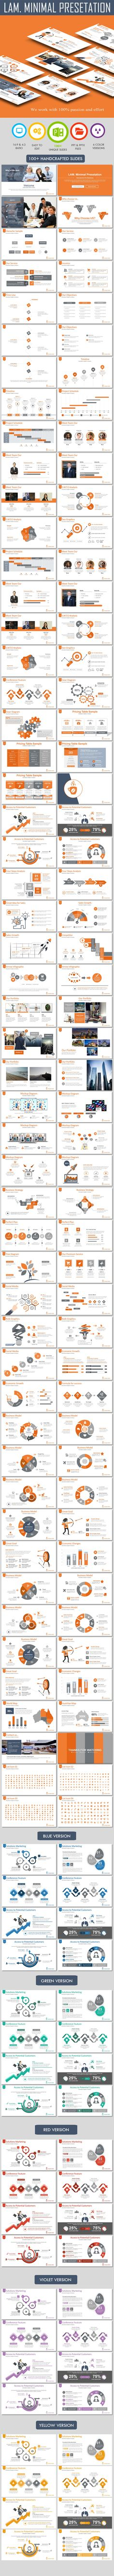 Minimal PowerPoint Presetation Template